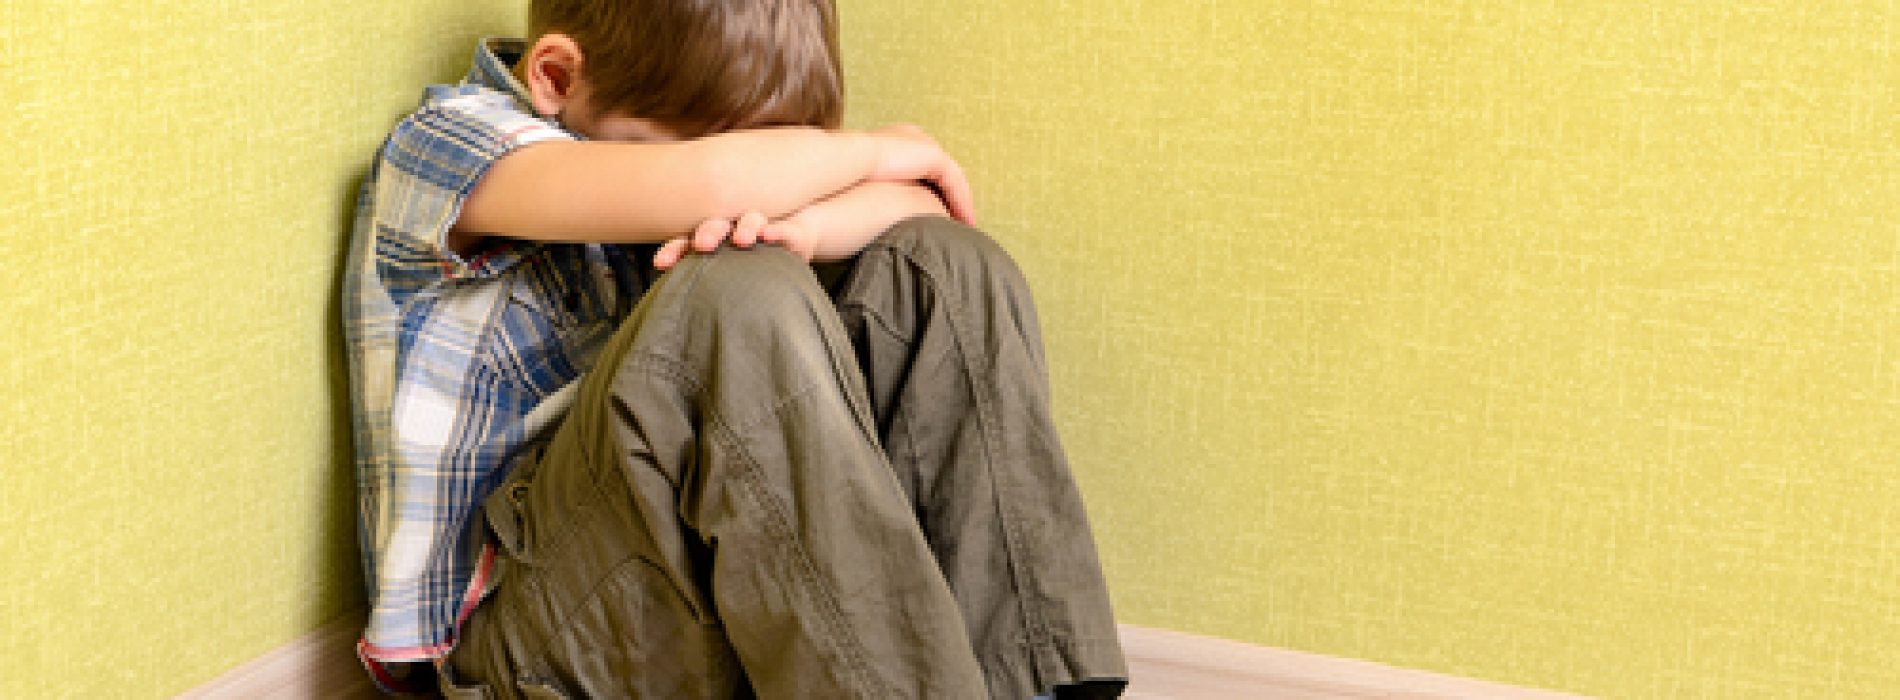 Understanding Children's Emotional Needs During Divorce